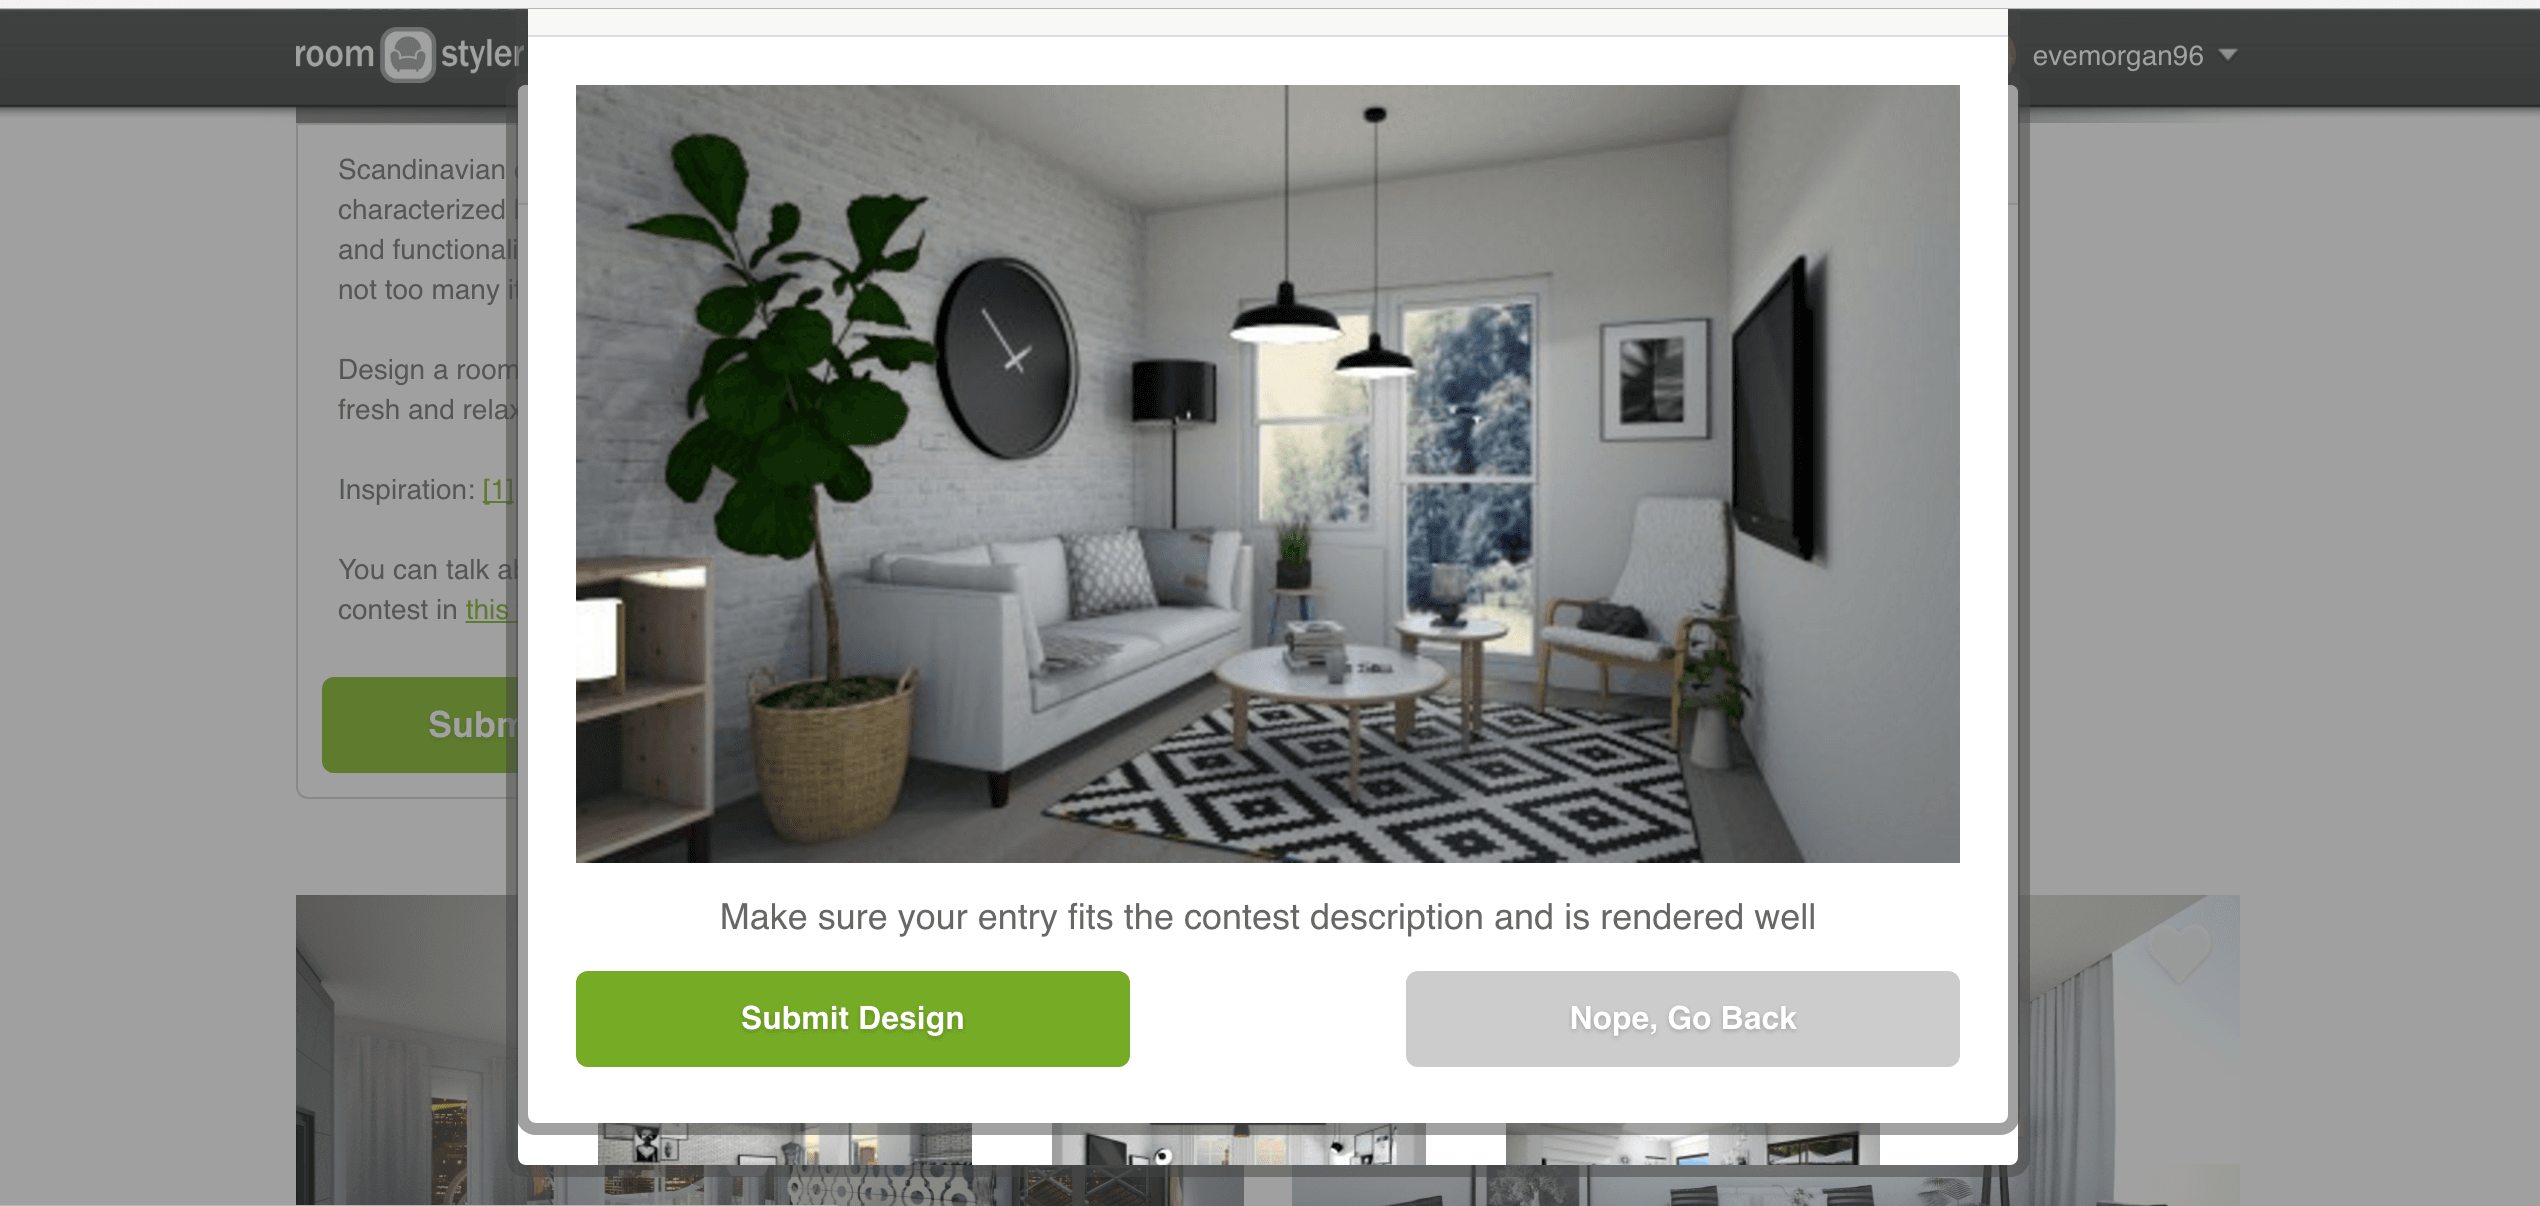 Want to create awesome photorealistic visuals? Roomstyler is here to help! Roomstyler is an online tool that allows you to create beautiful floorplans and 3D renders with minimal effort.